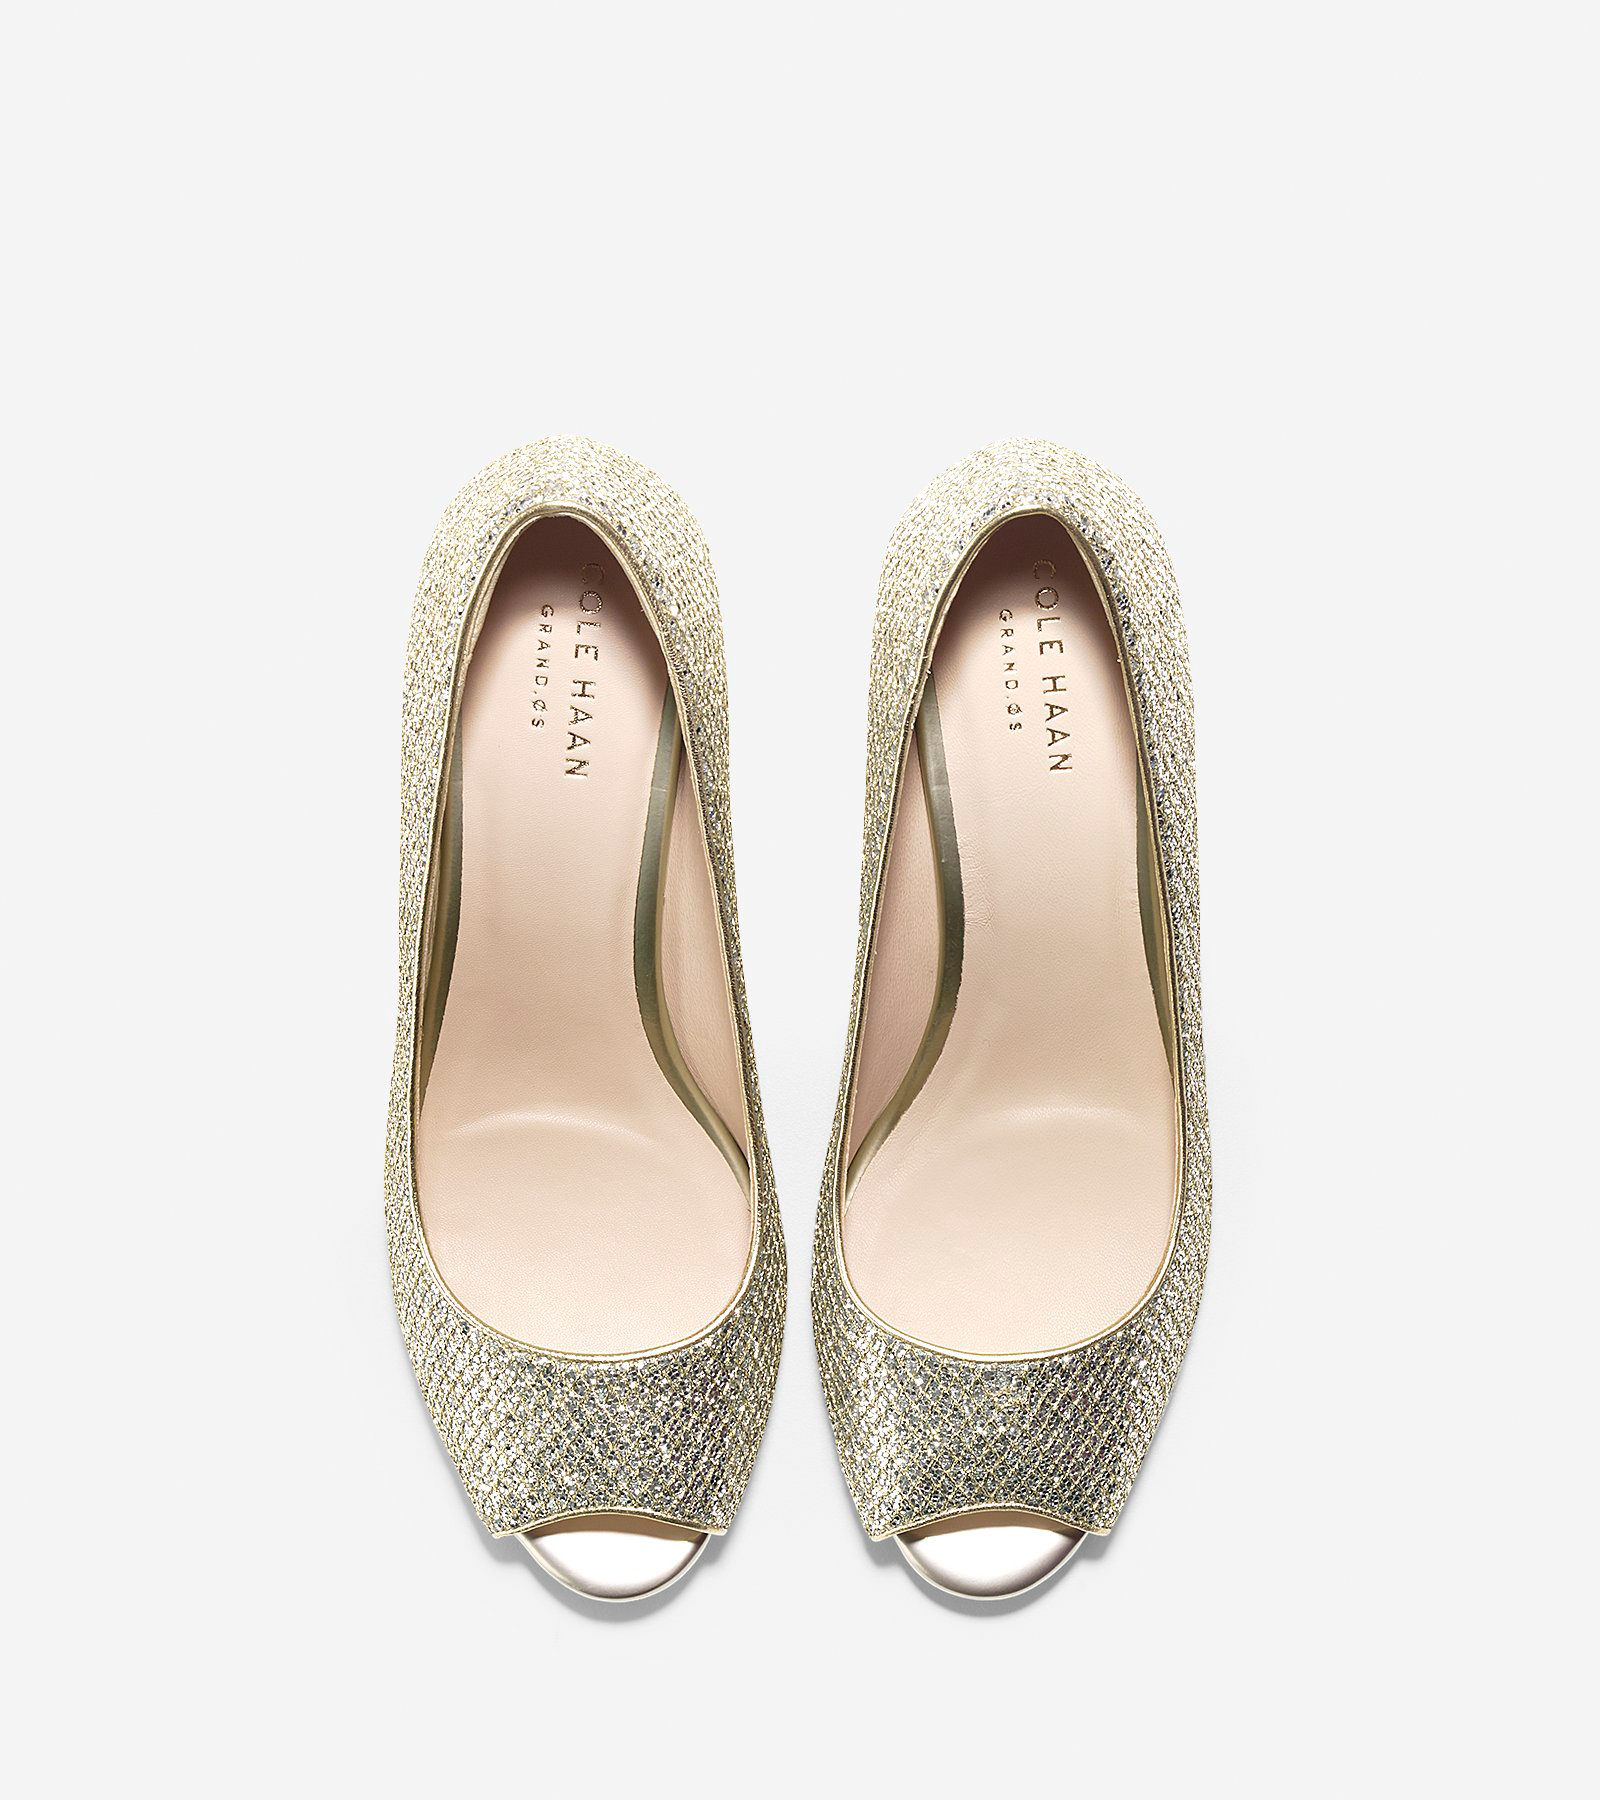 c49750eac272 Sadie Open Toe Wedge (65mm). $180.00 Now $124.95. Color Gold-silver Glitter  ...